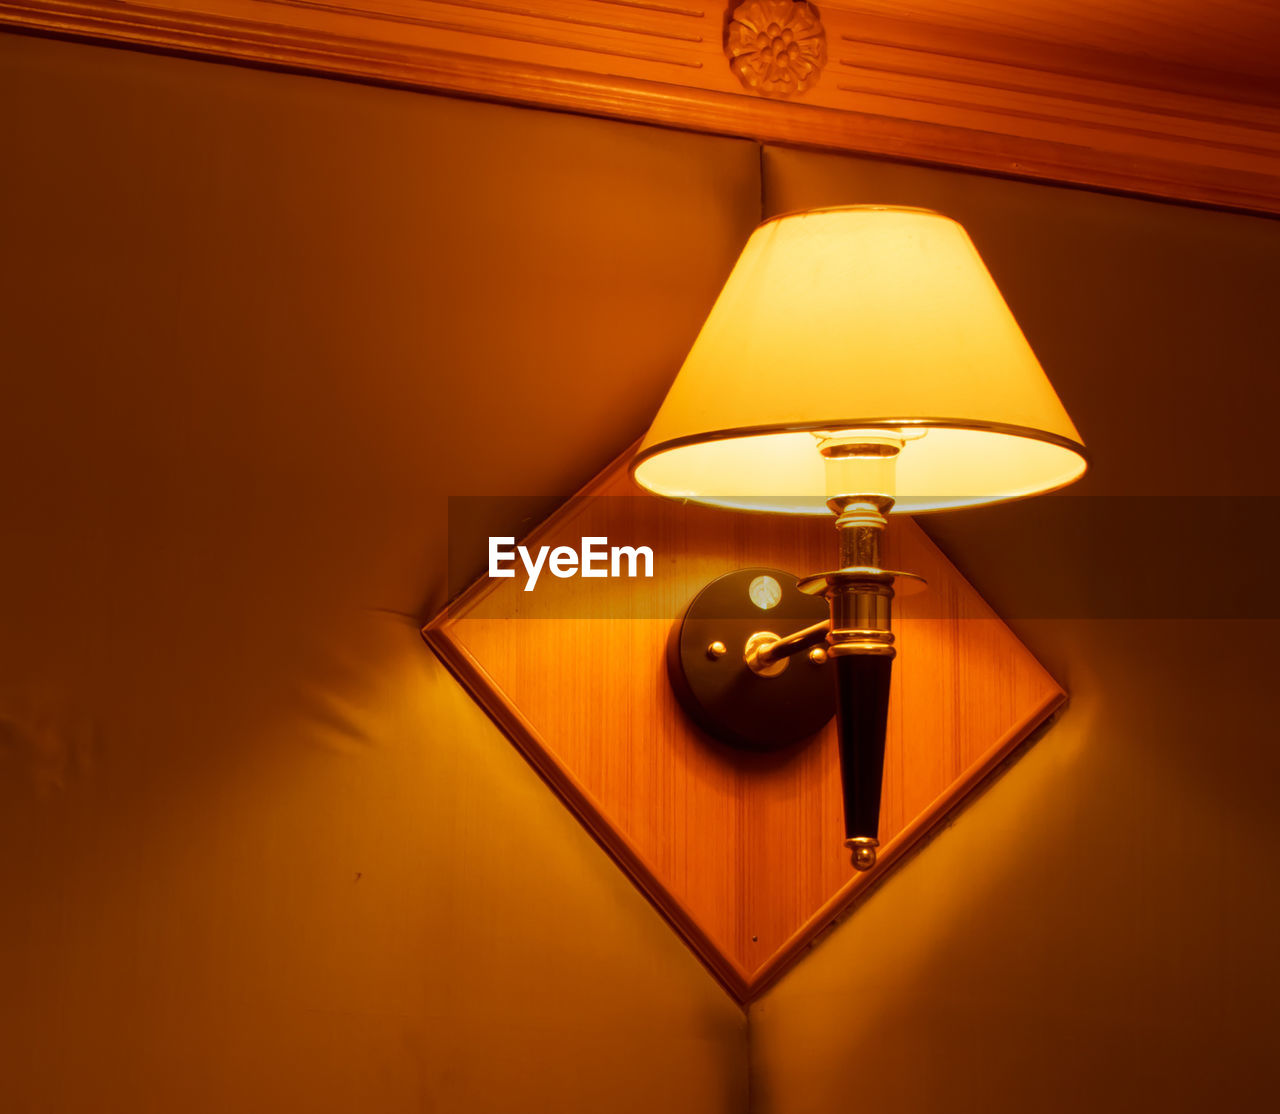 lighting equipment, illuminated, electric lamp, electricity, indoors, glowing, light, no people, electric light, lamp shade, technology, table, wall - building feature, light - natural phenomenon, close-up, orange color, pendant light, wood - material, retro styled, design, dark, ceiling